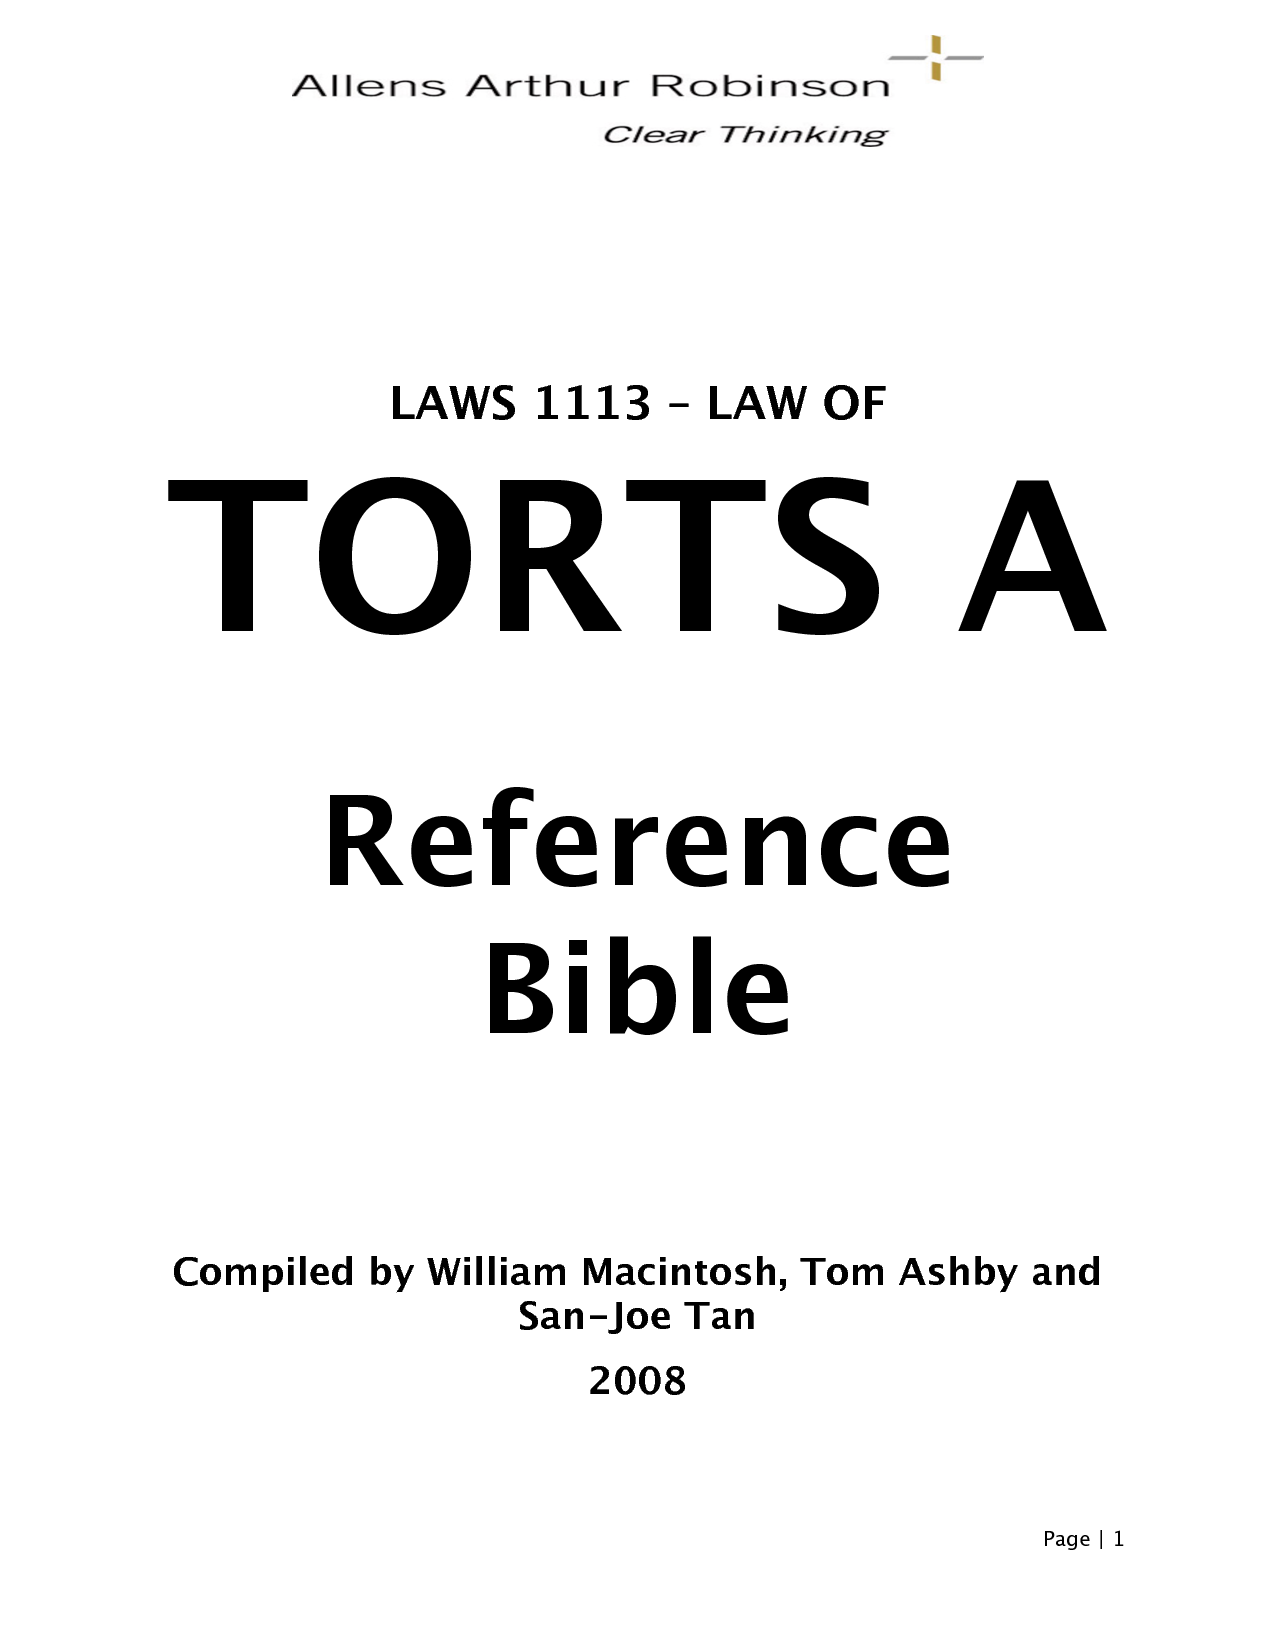 torts notes Ads related to law of torts notes tort law wwwfindlawcom/practiceareas search laws, regulations, codes by practice areas & state free info the law of torts.